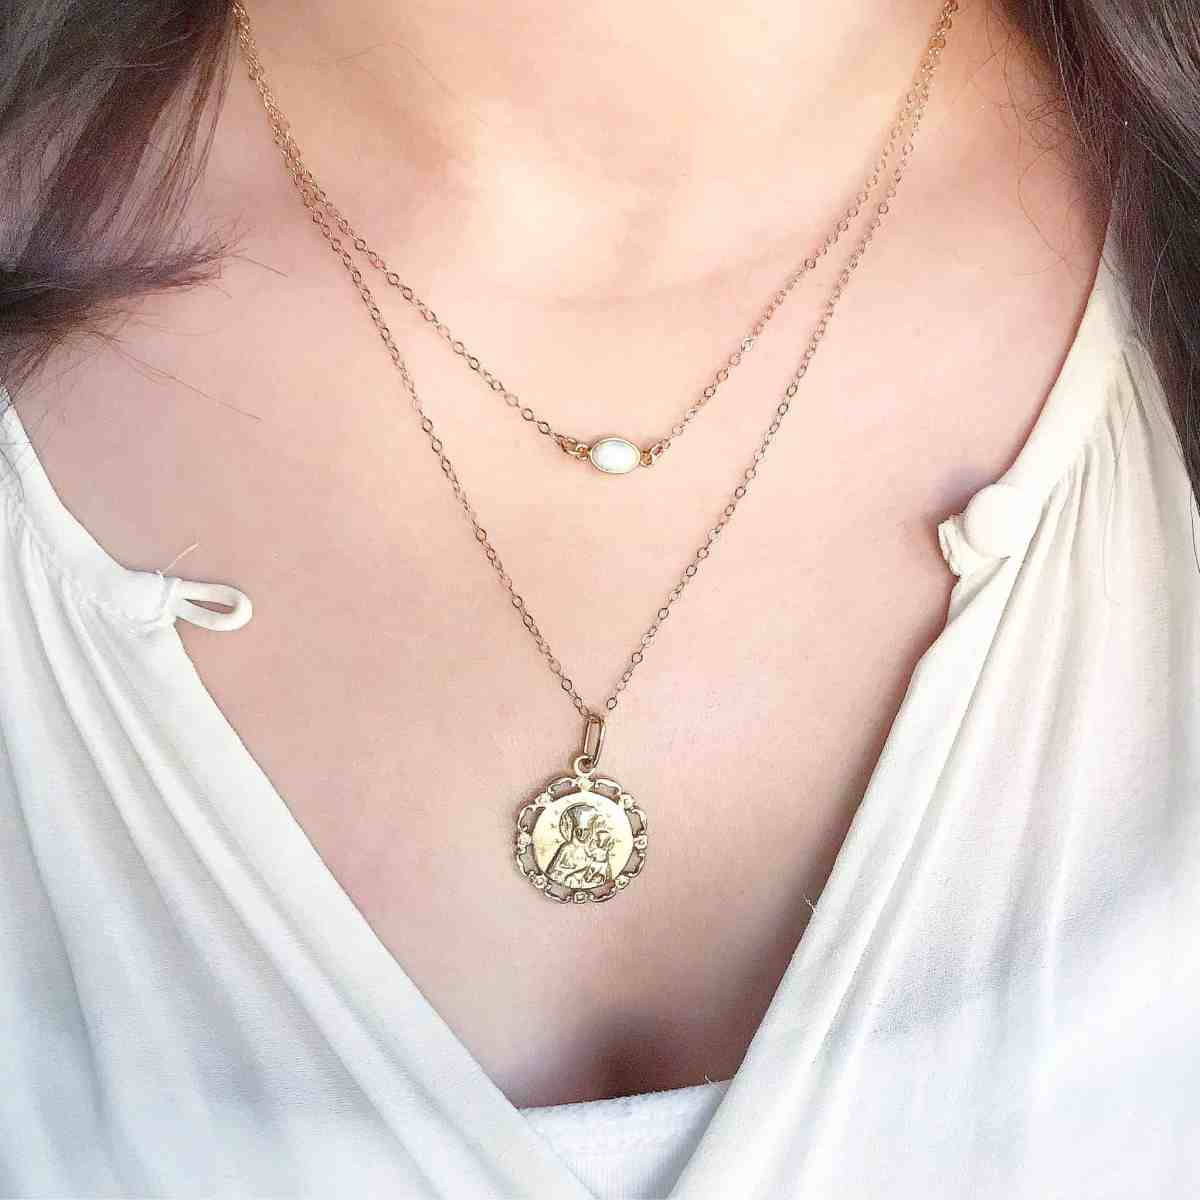 Introducing Landon Lacey & An Opal Necklace Give Away!